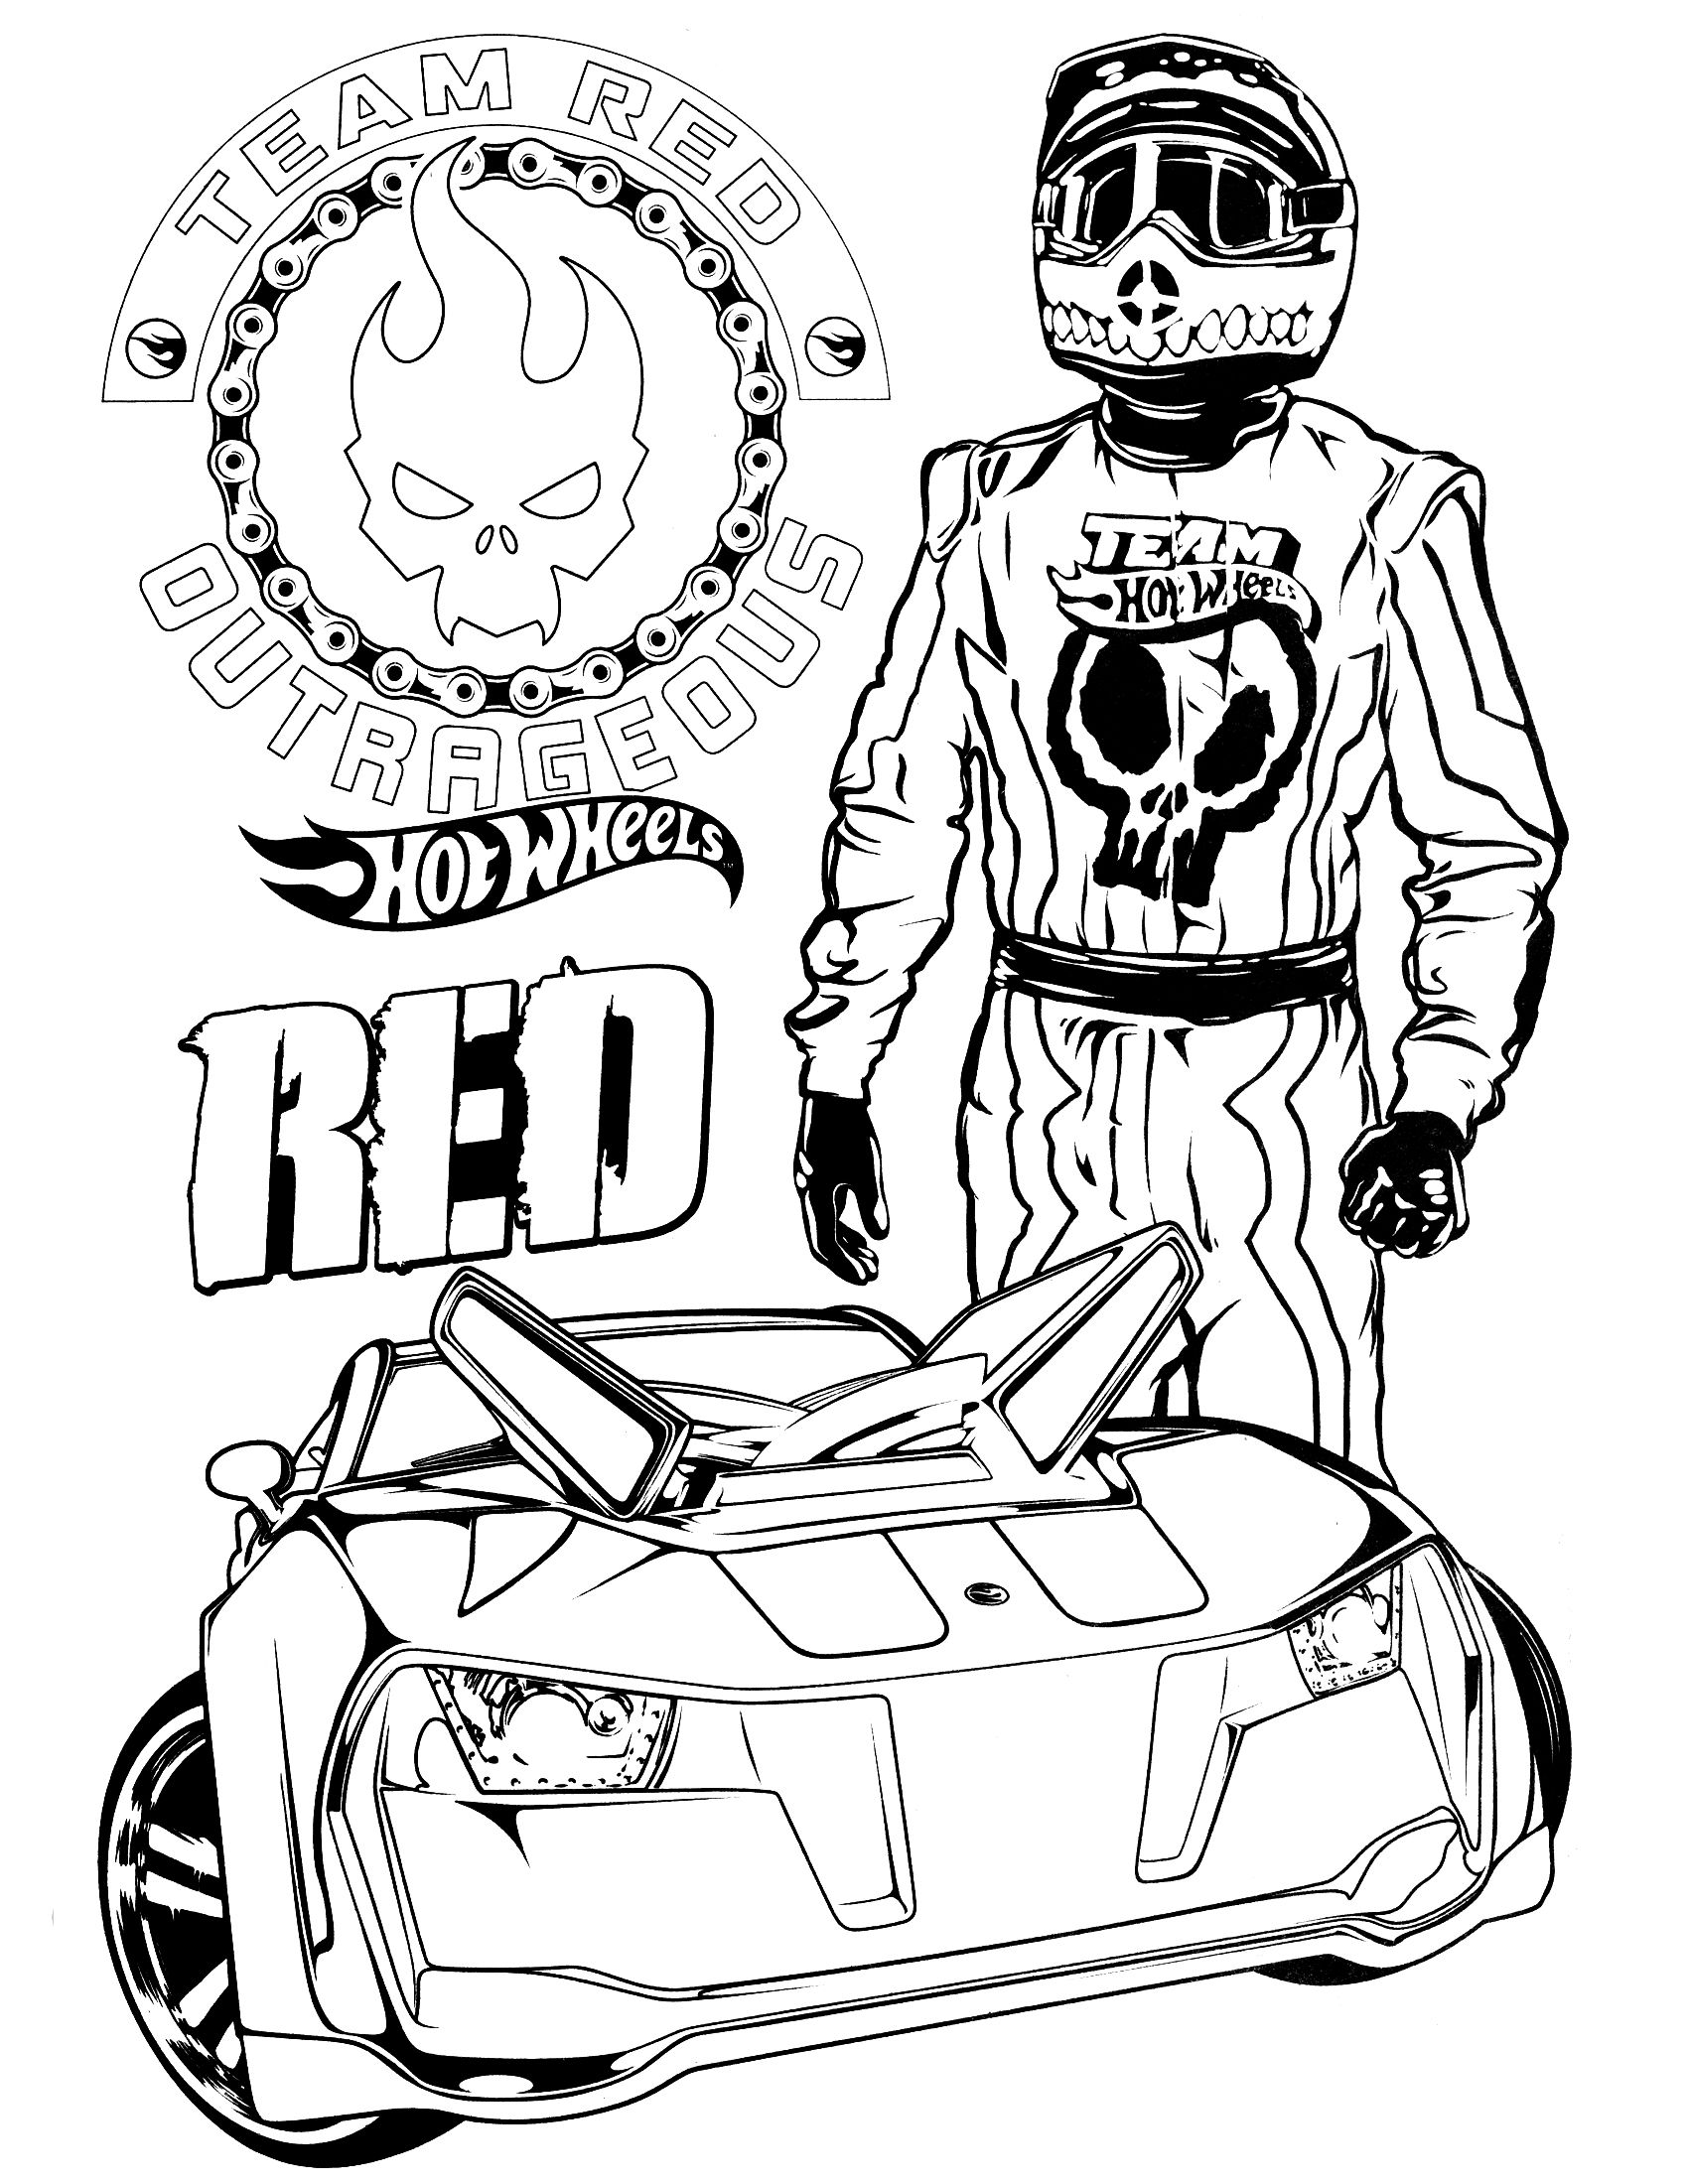 Coloring pages for hot wheels - Team Hot Wheels Coloring Pages 5